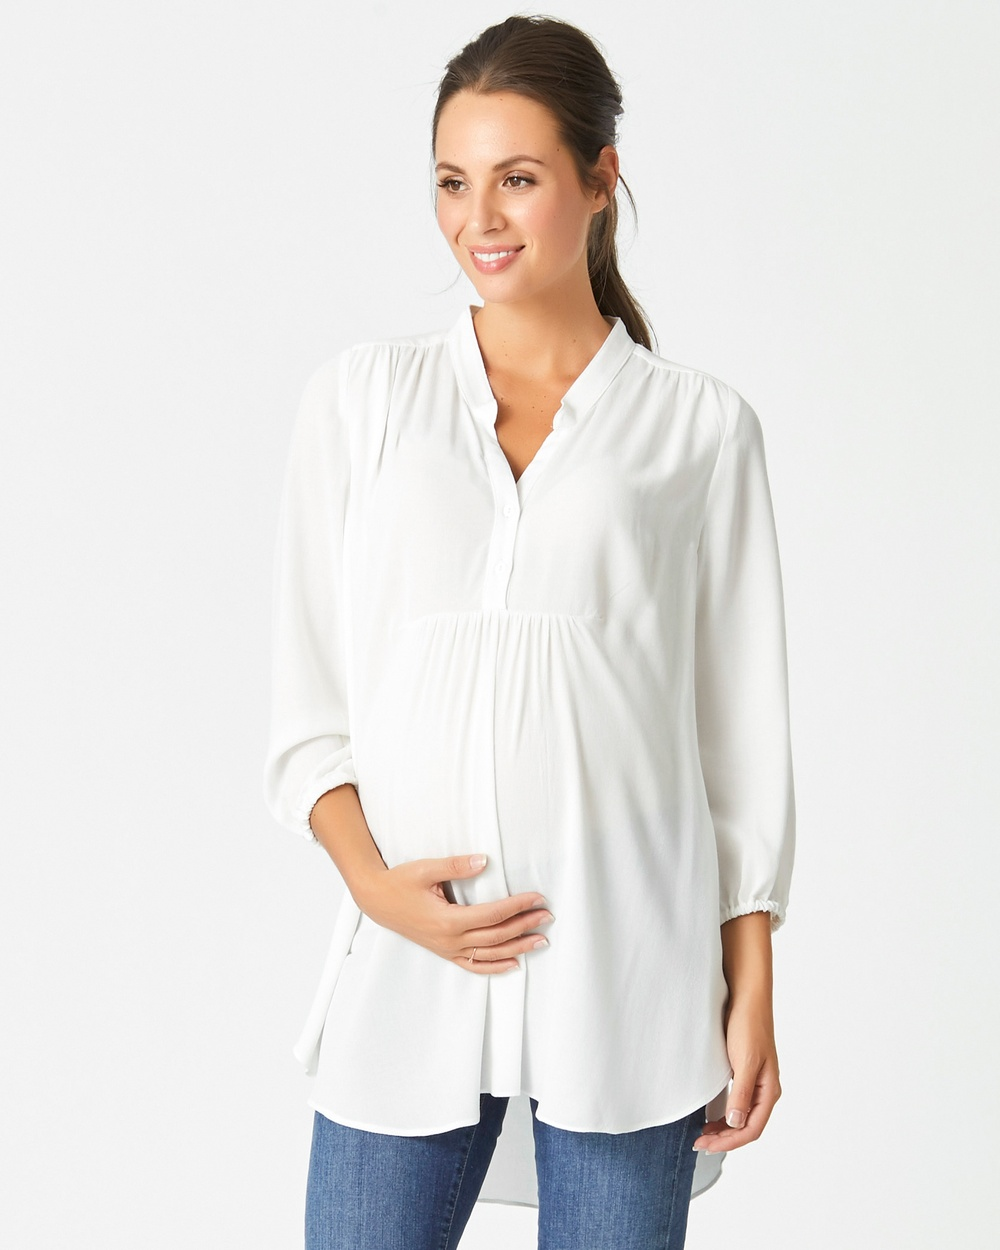 Pea in a Pod Maternity Imogen Gathered Nursing Top Tops White Imogen Gathered Nursing Top